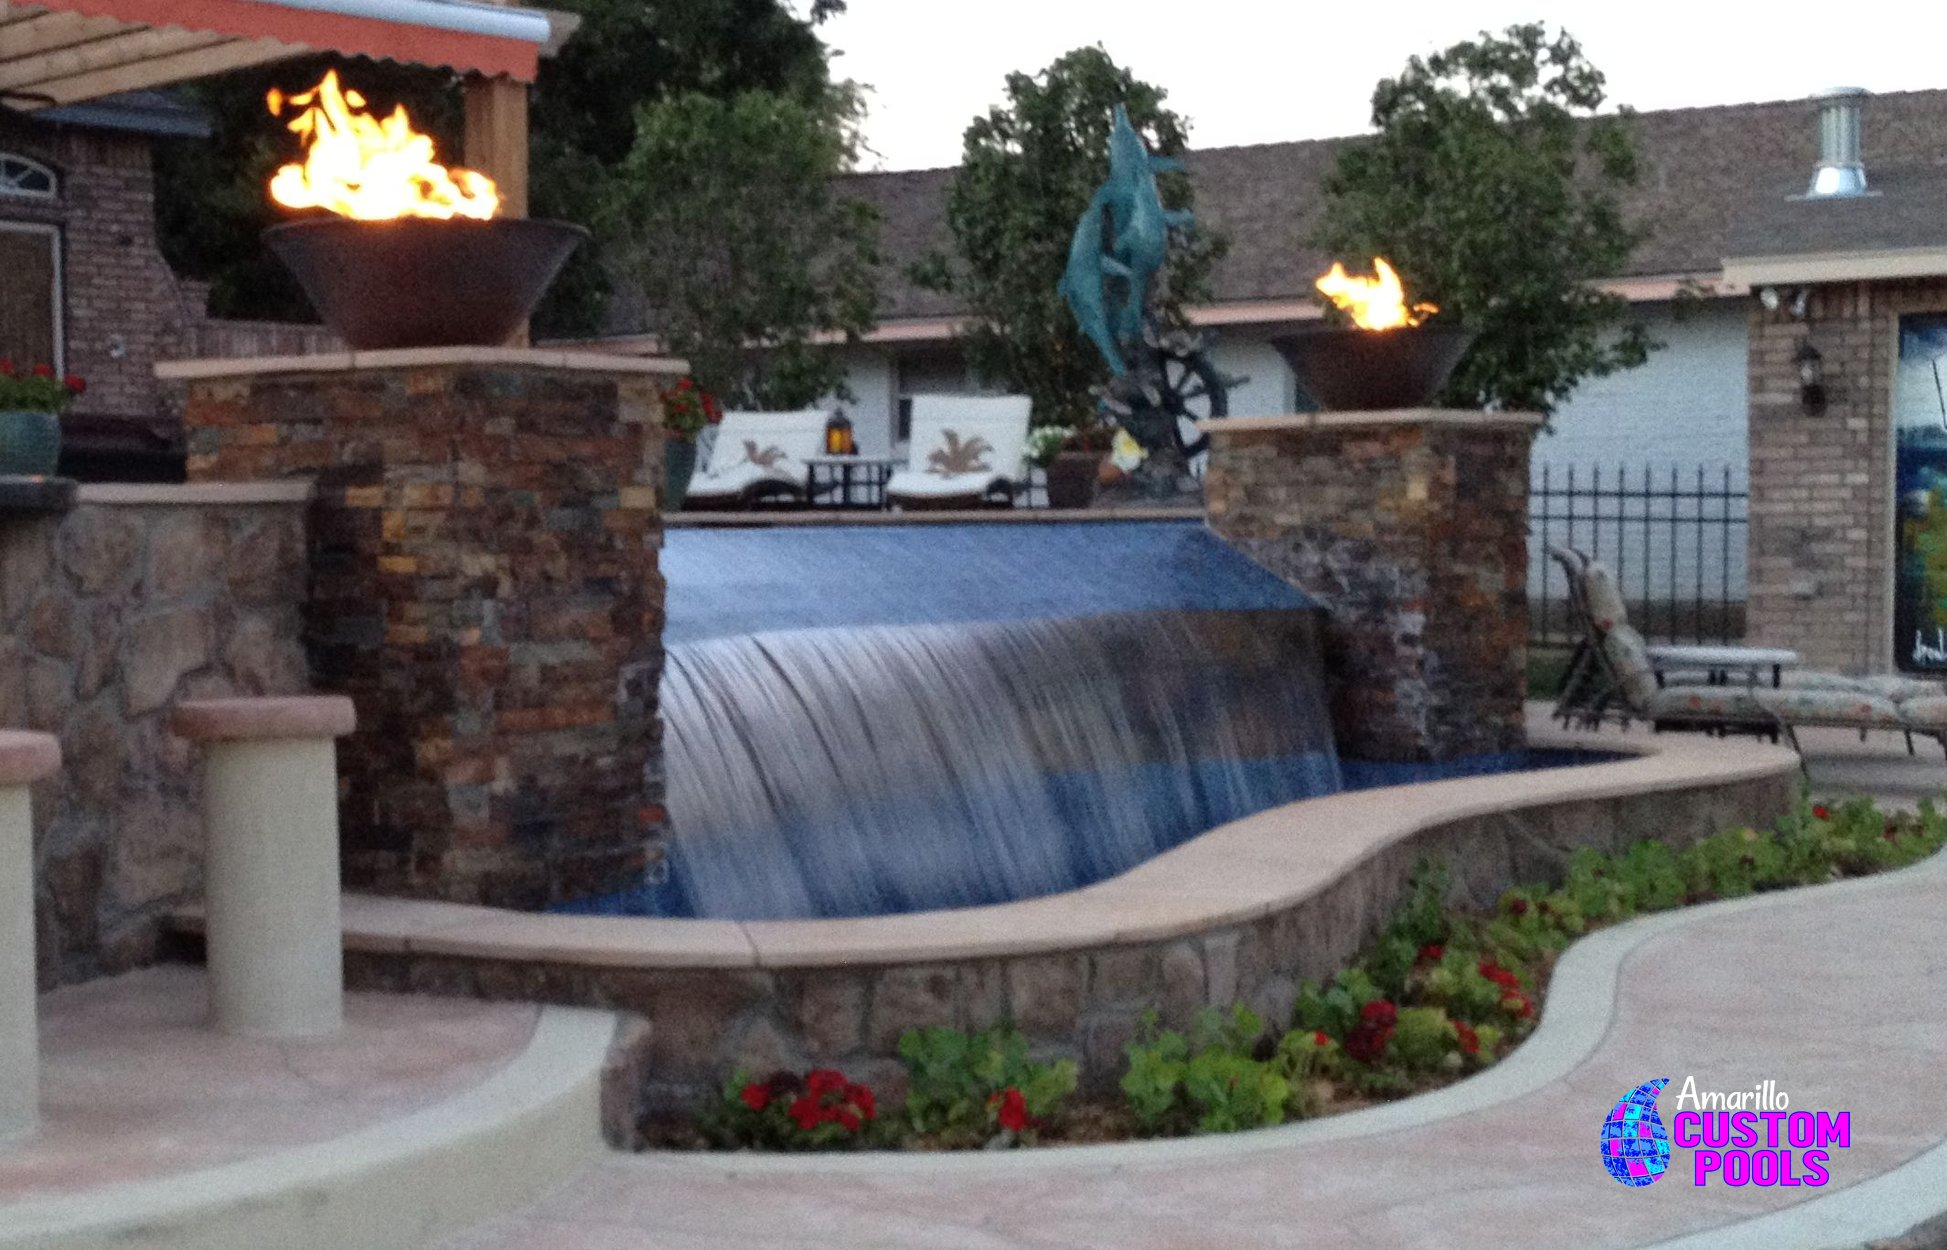 custom water features amarillo, texas | new pool construction